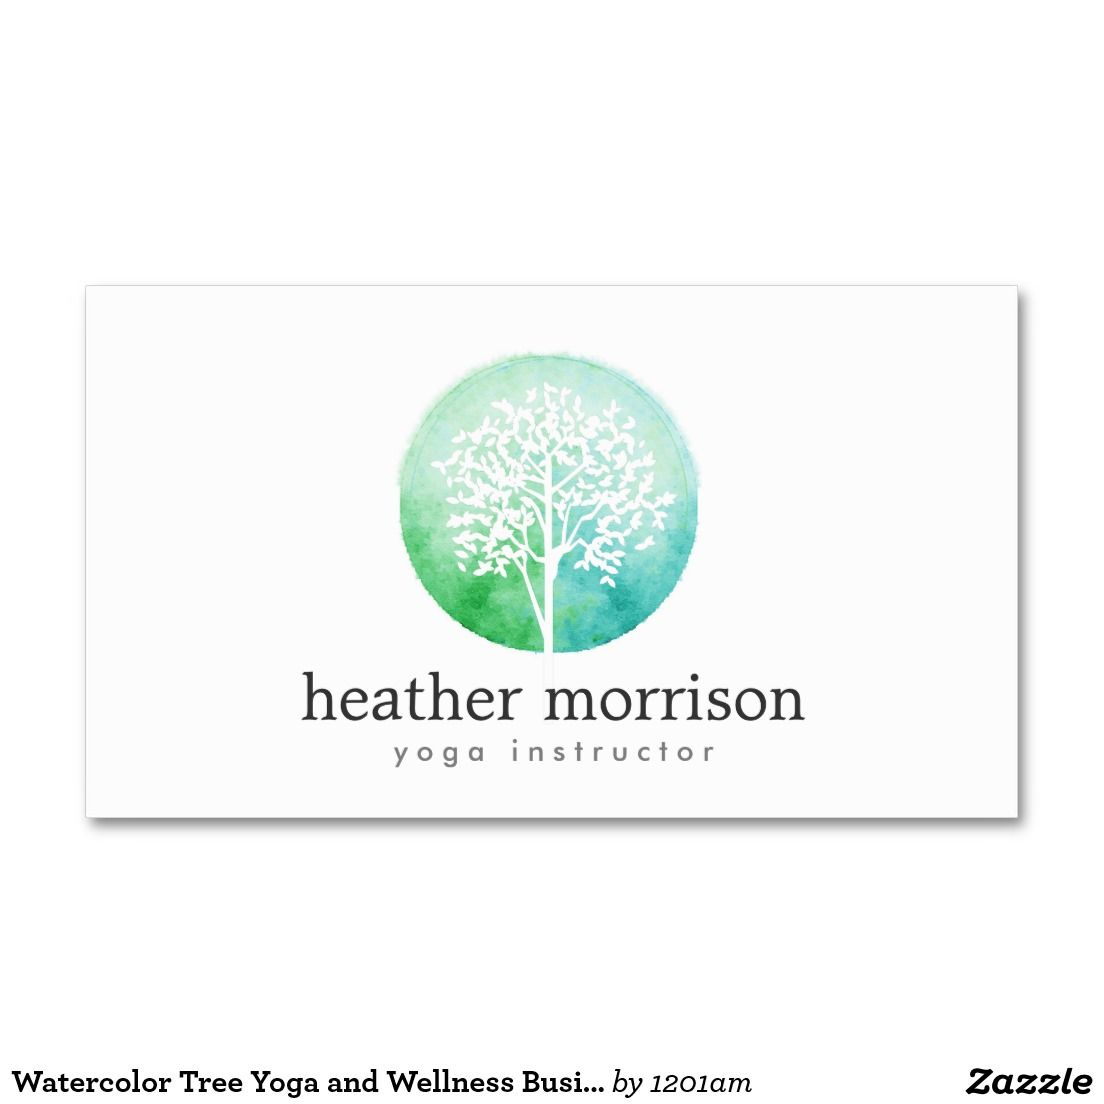 Watercolor tree yoga and wellness business card business cards watercolor tree yoga and wellness business card magicingreecefo Choice Image